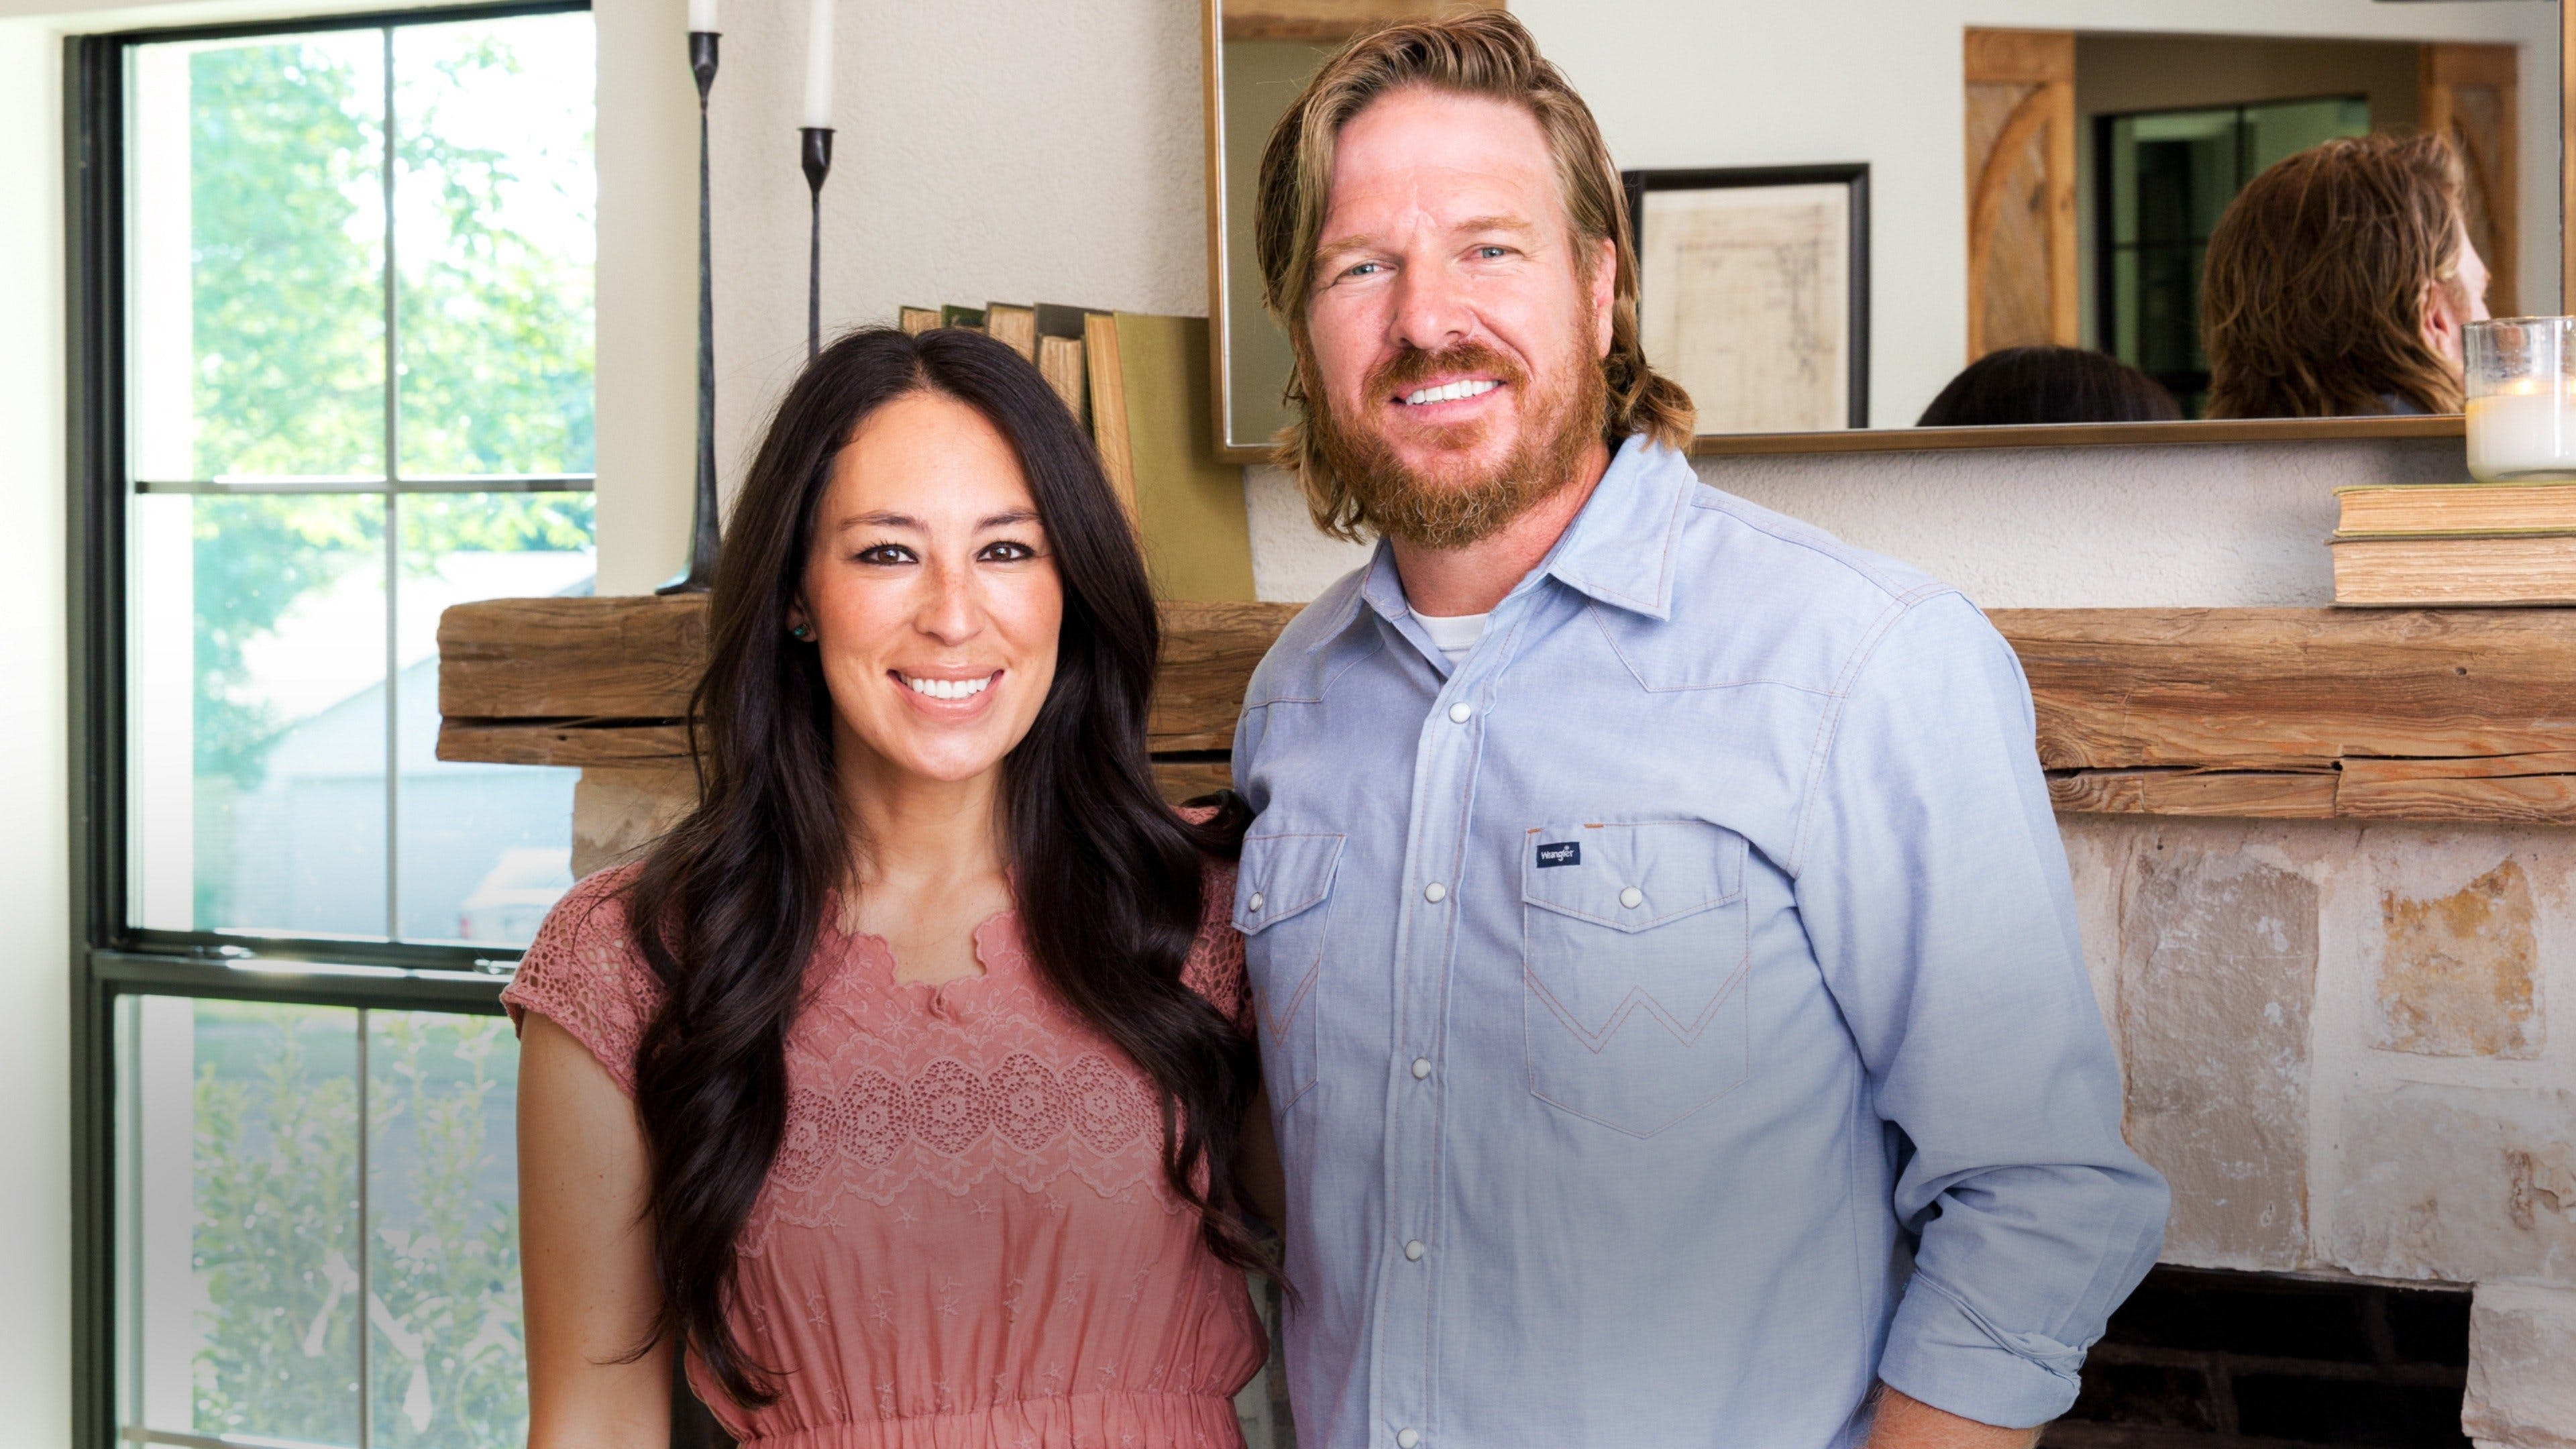 fixer upper professor and family crave country climate